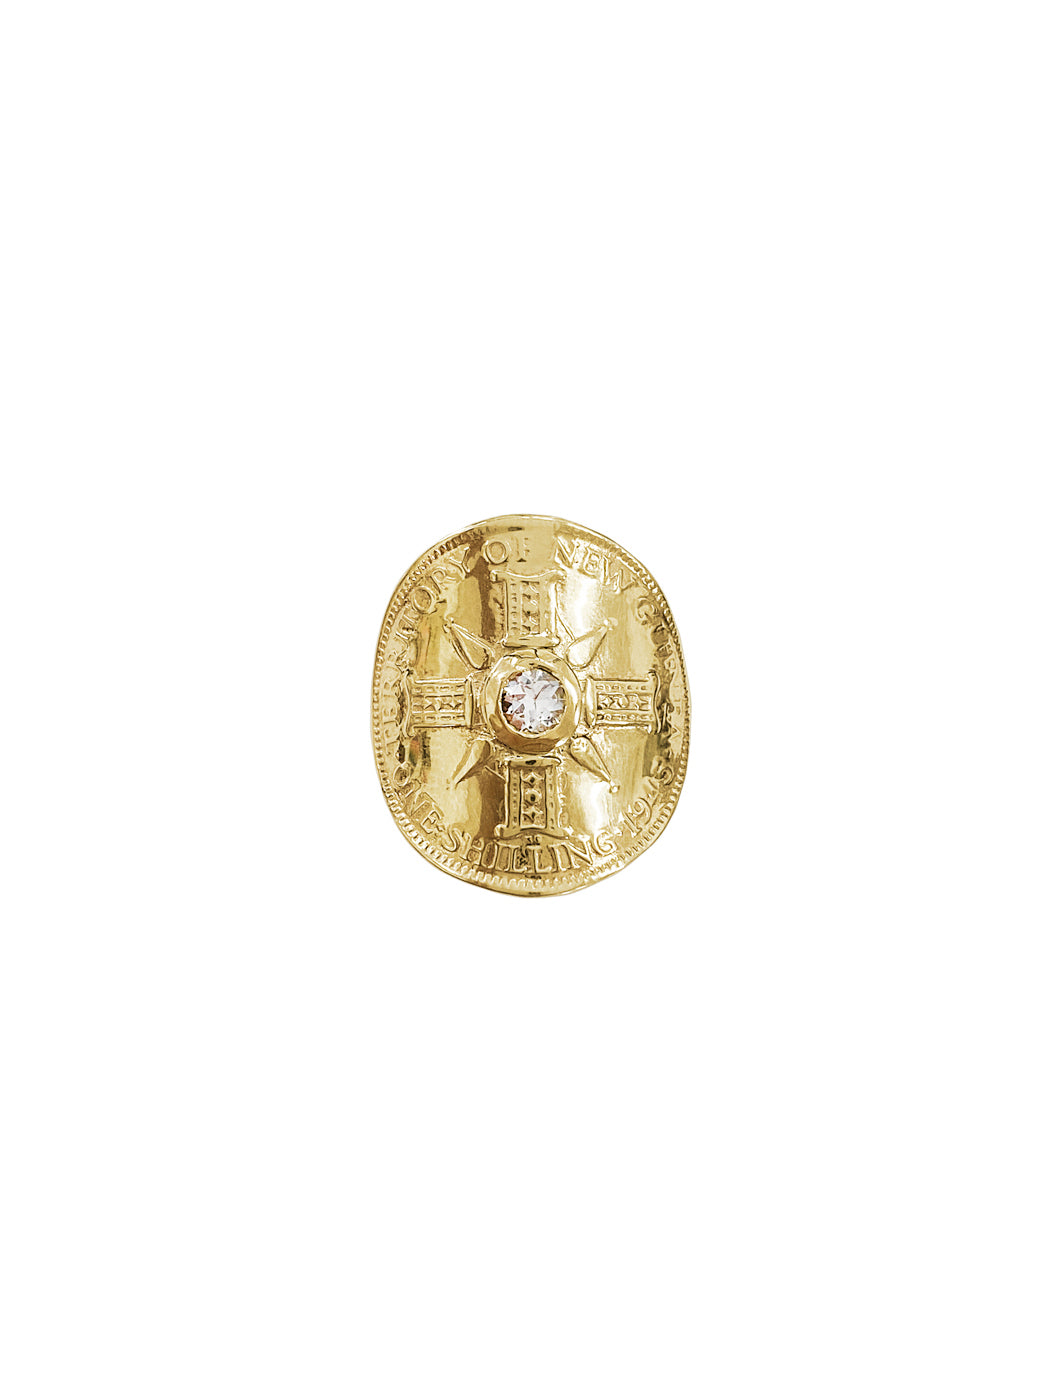 Fiorina Jewellery Gold PNG Bent Coin Ring